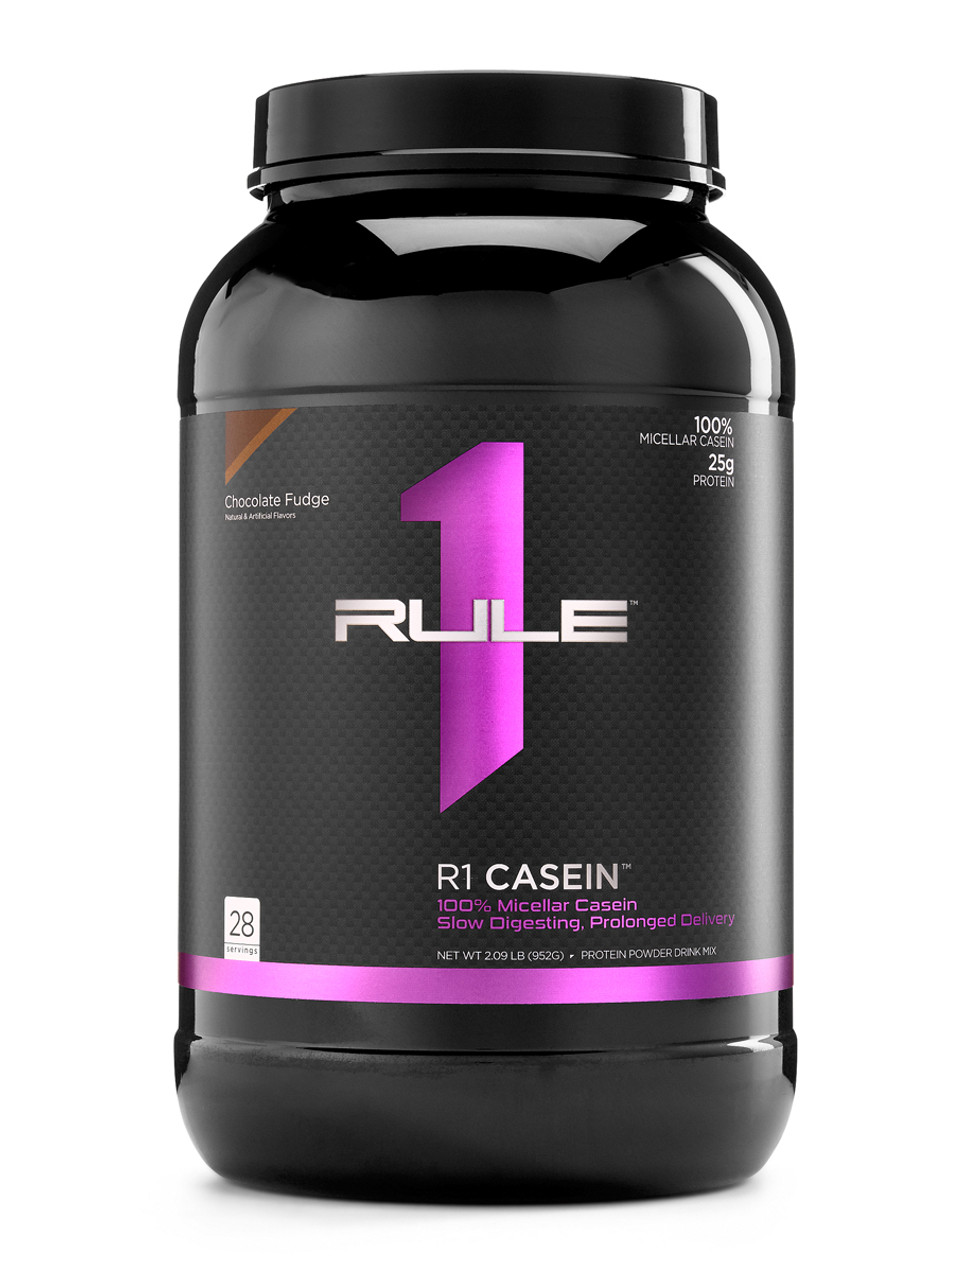 What is casein powder